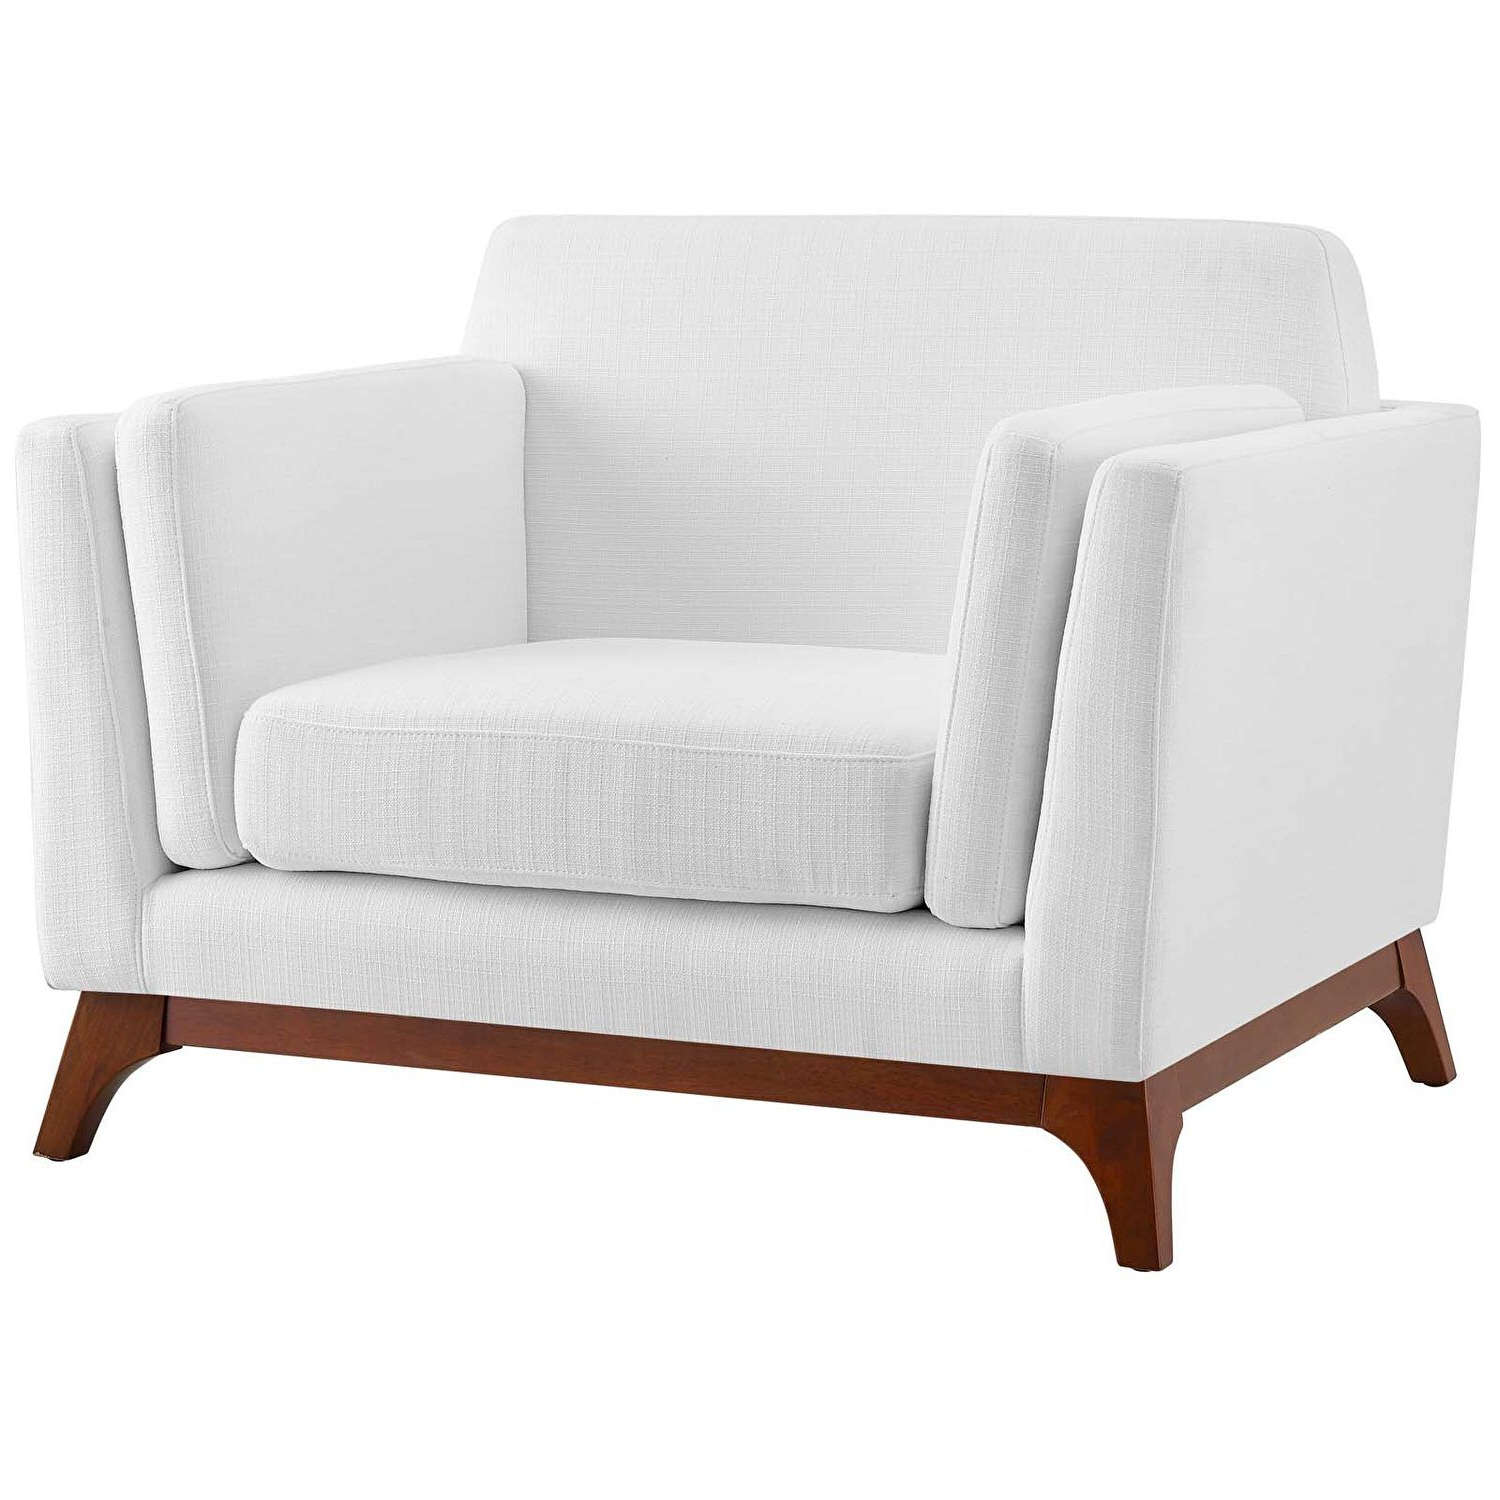 Popular Belz Tufted Polyester Armchairs Within Chance White Chair Eei 3063 Whi Modway Furniture Chairs In (View 15 of 20)